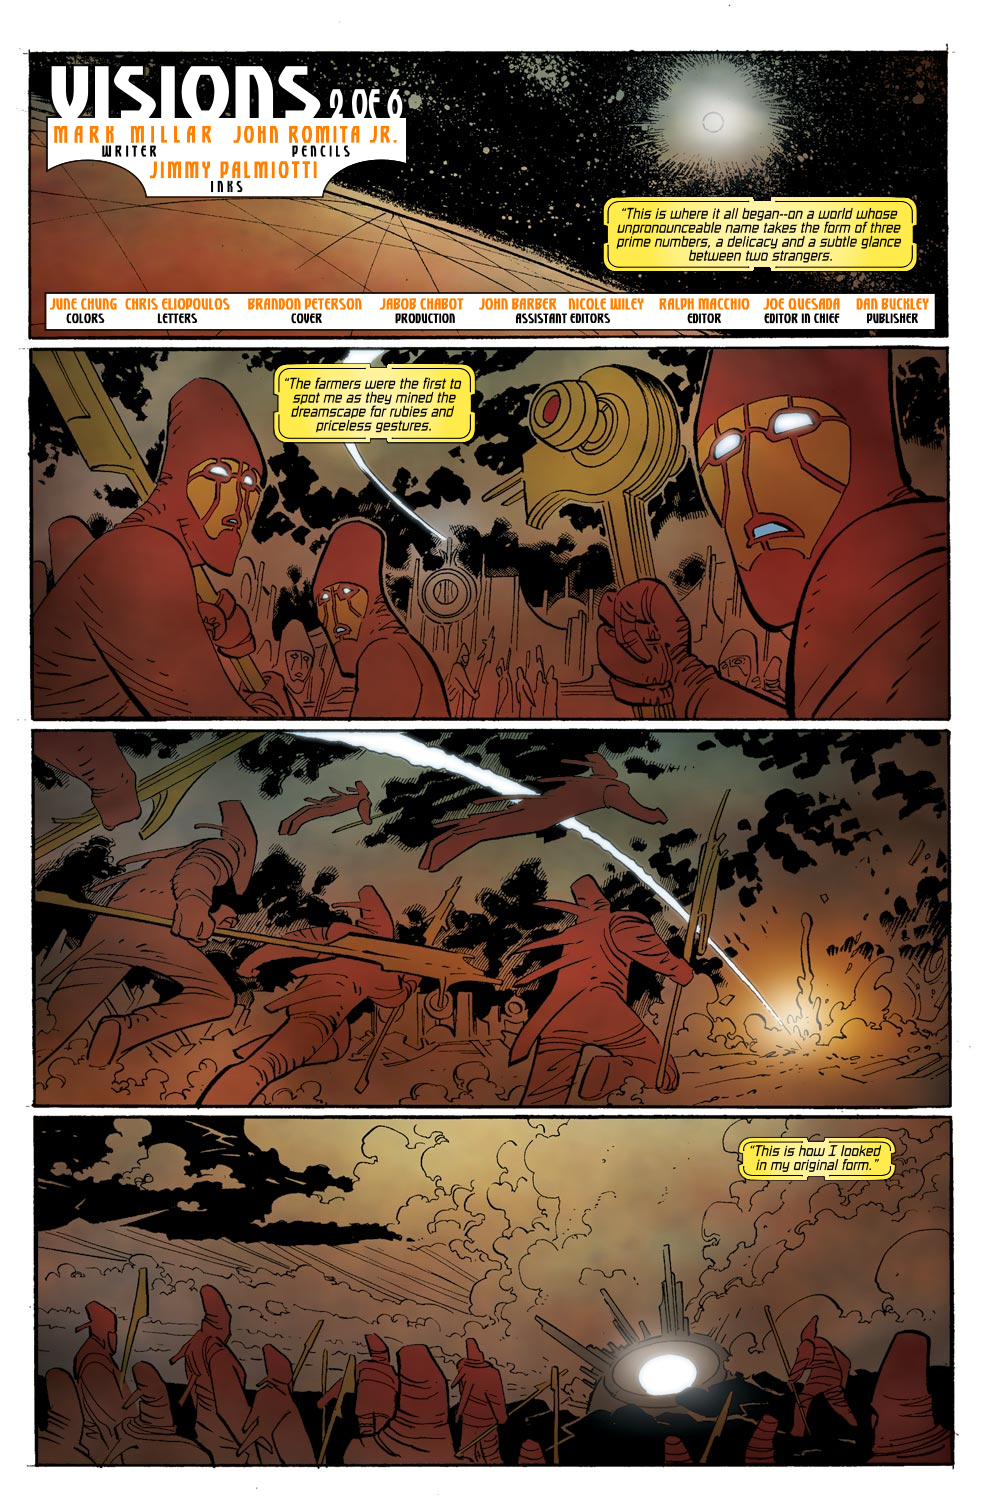 Read online Ultimate Vision comic -  Issue #0 - 7